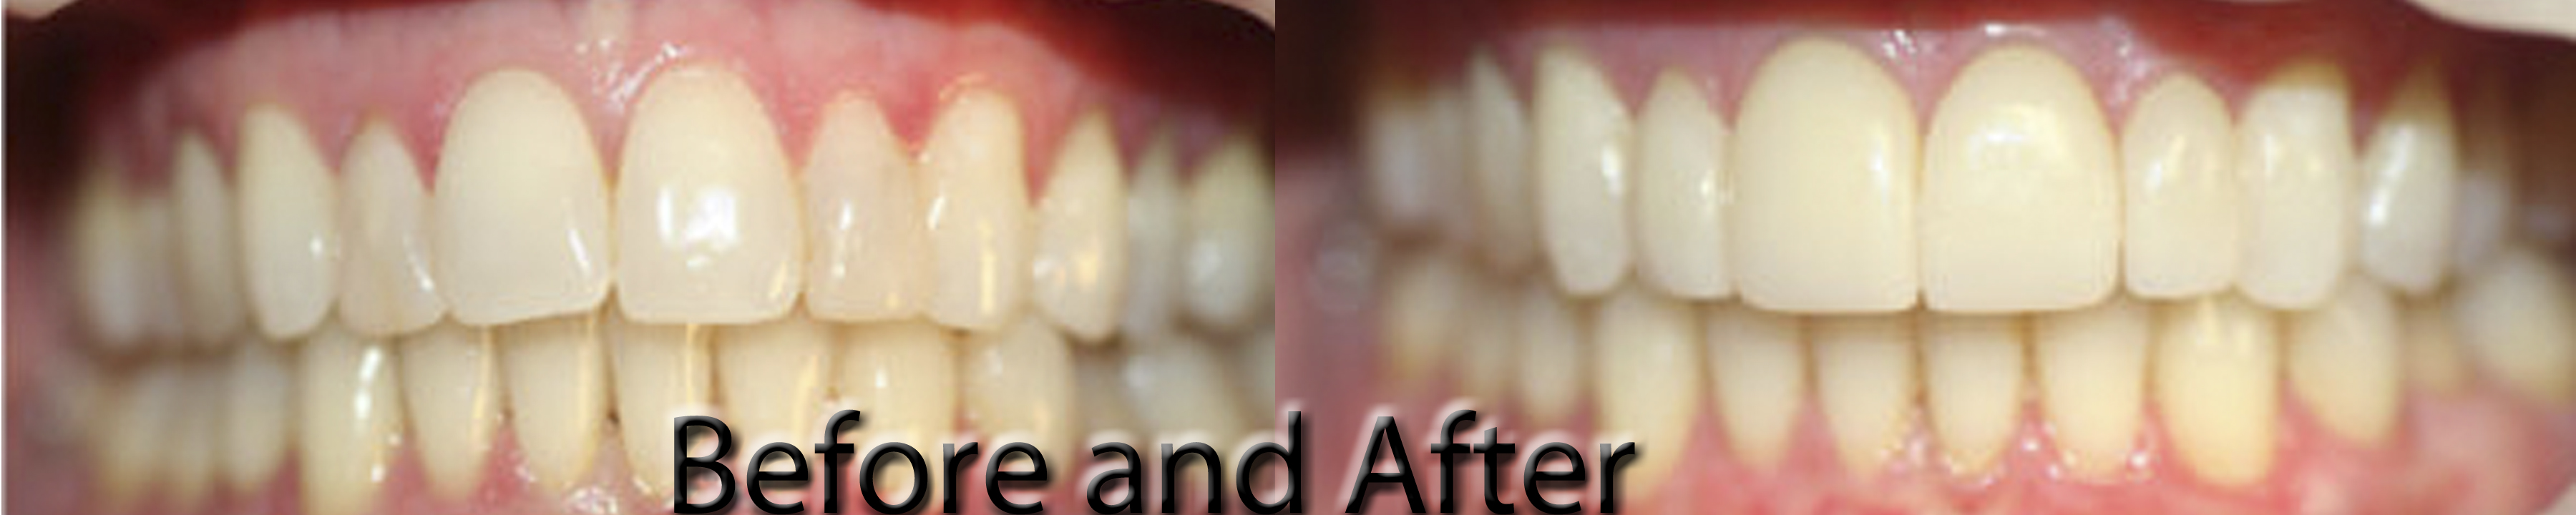 Bonding to Veneers